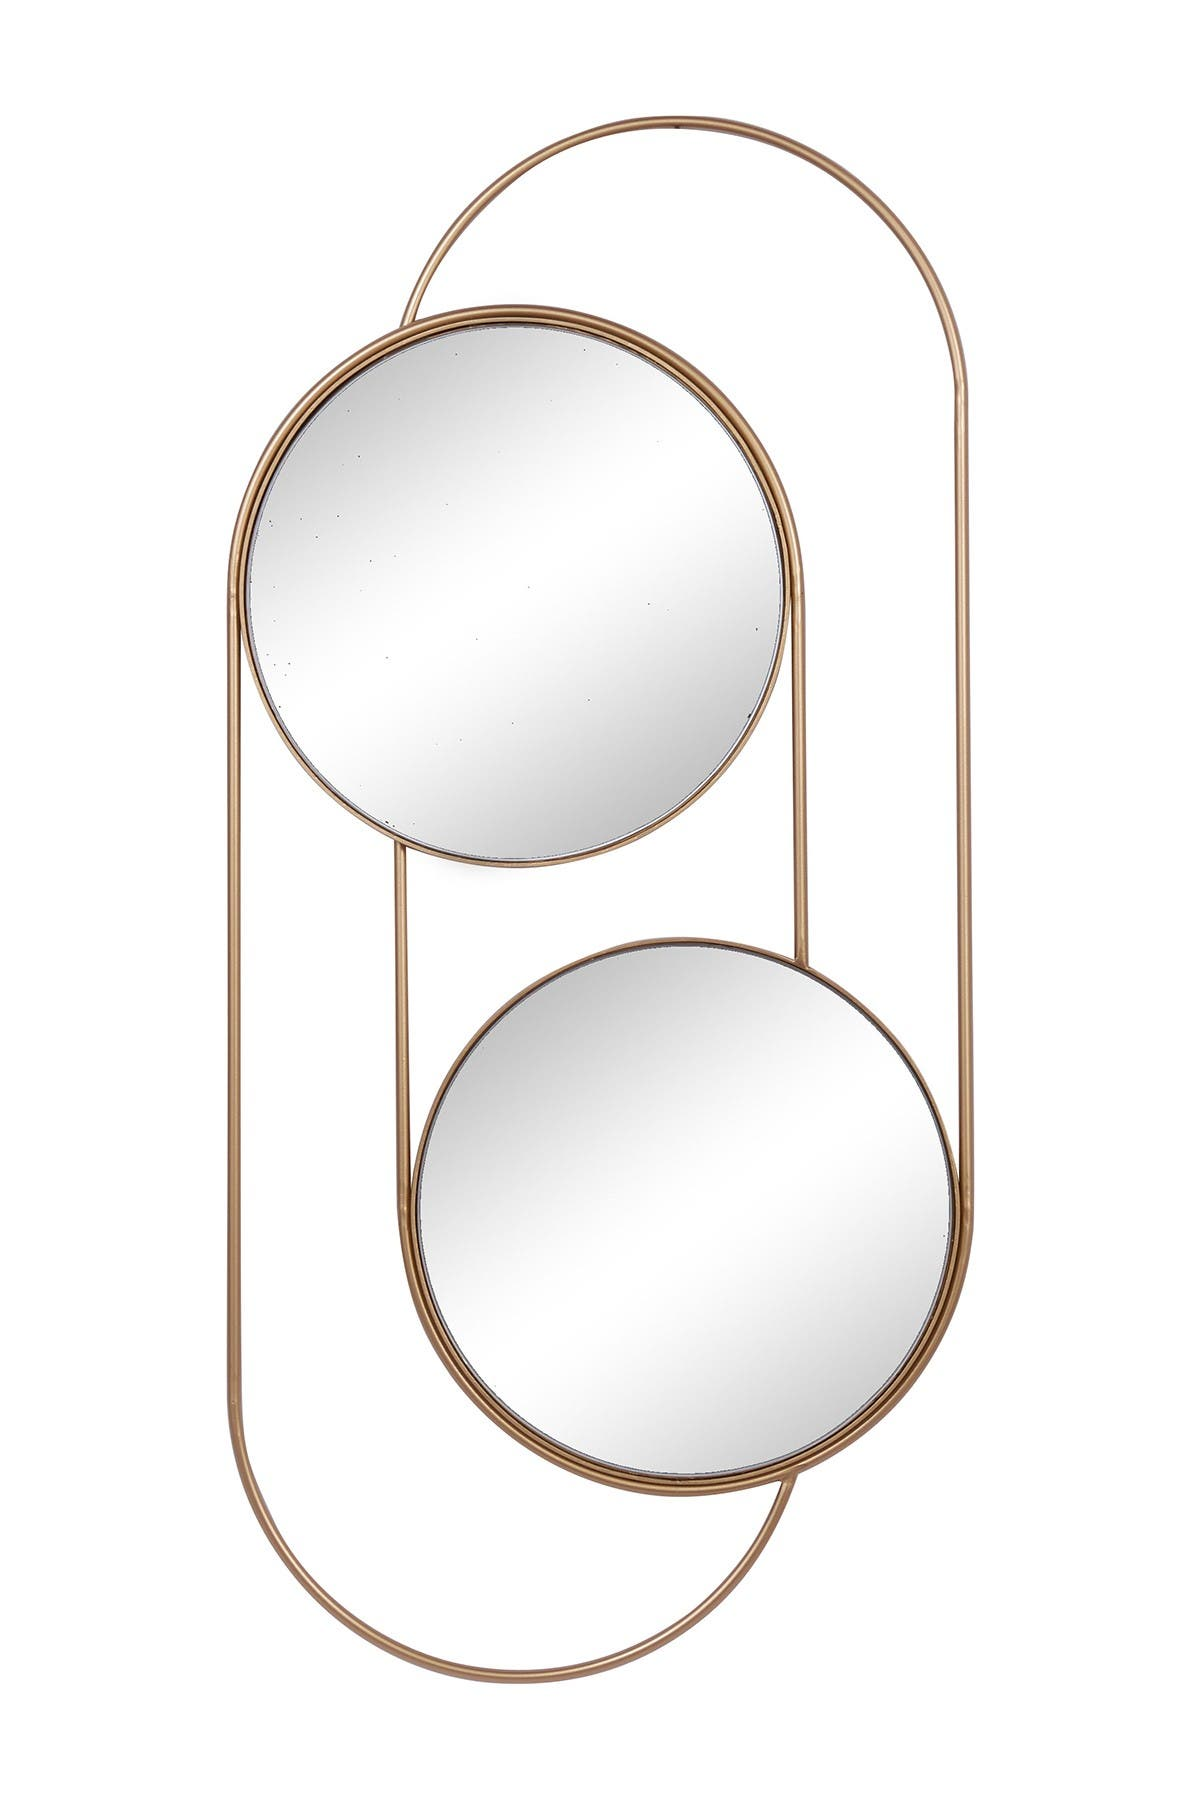 "Image of Willow Row Tall Double Rounded Gold Metal Wall Mirror - 20"" x 43"""